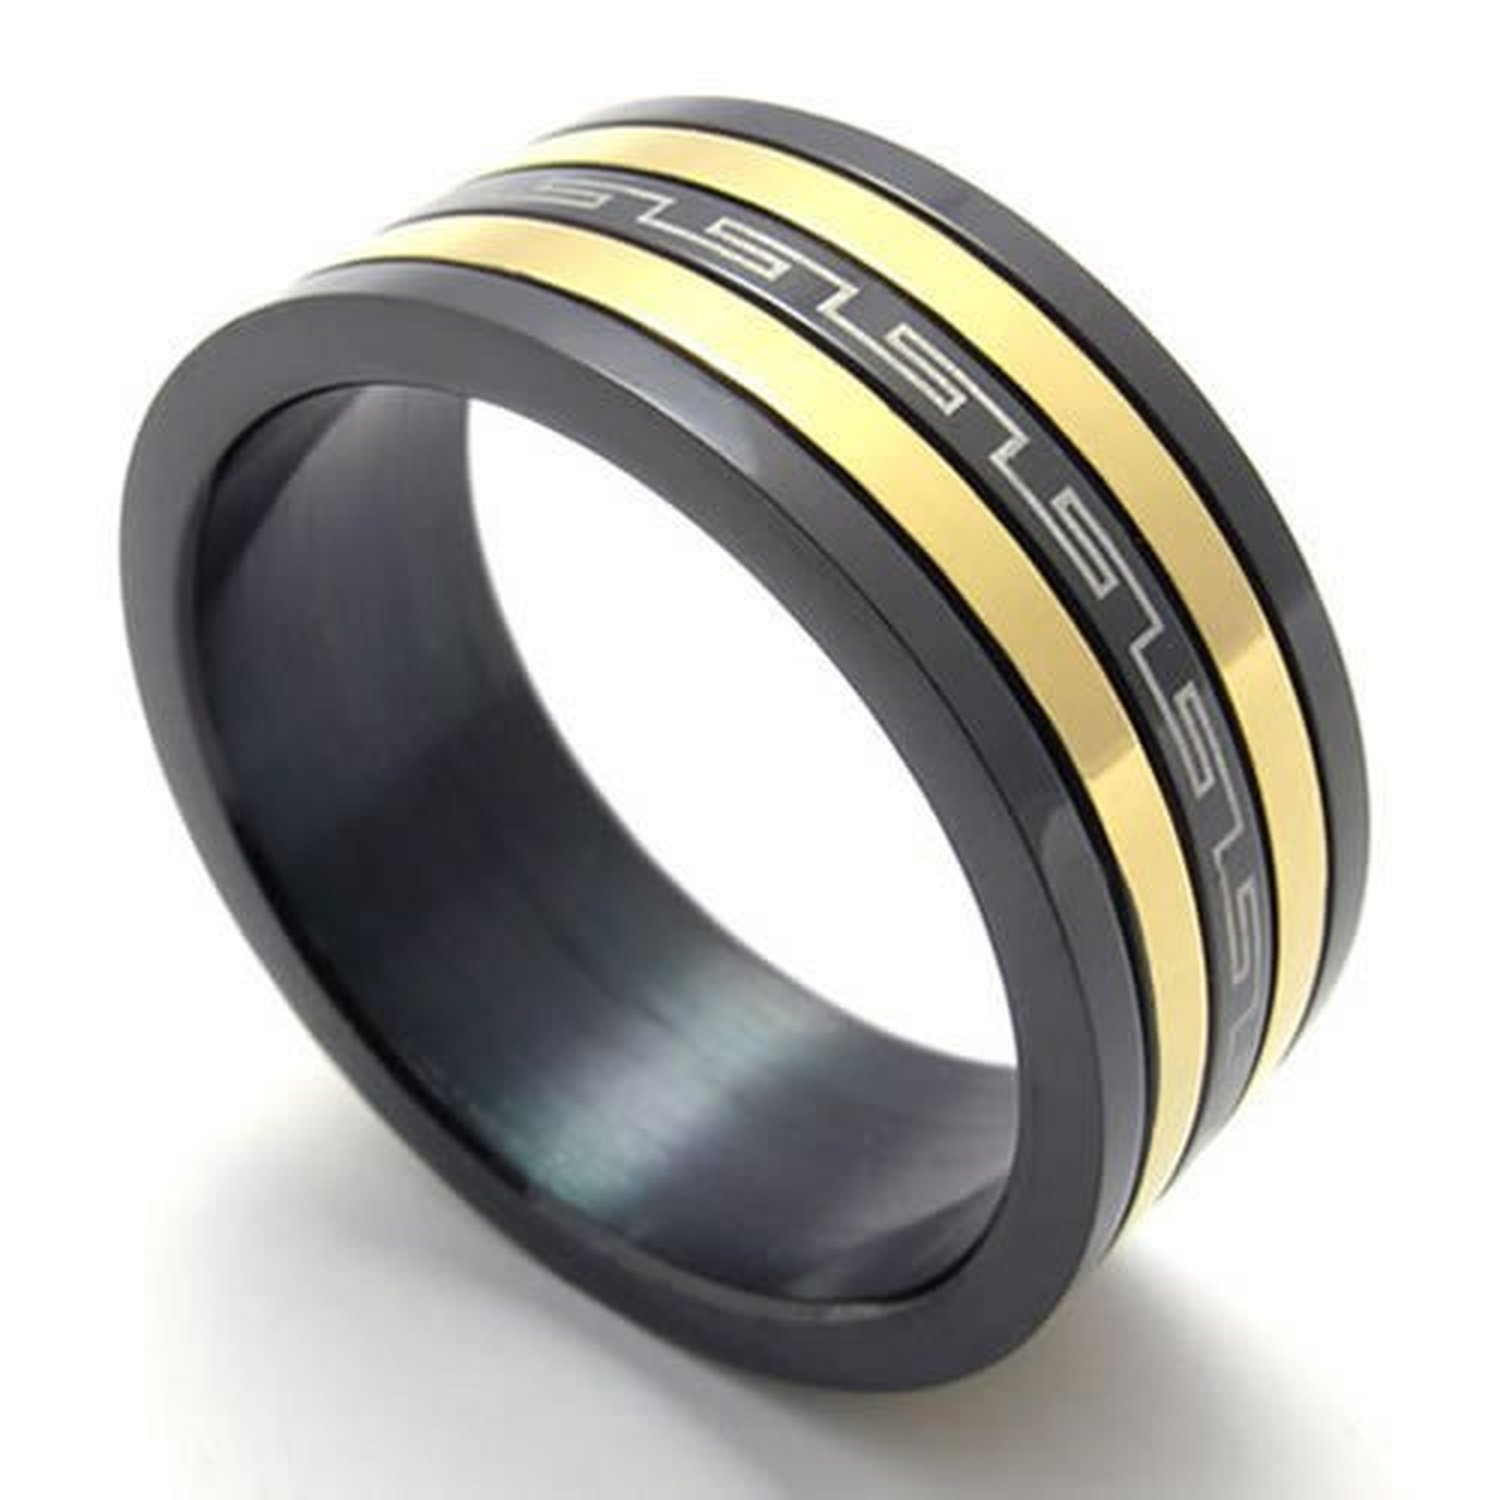 CLJSTORE Jewelry Spinning Mens Rings, Spinner Polished Stainless Steel Band, Black Gold